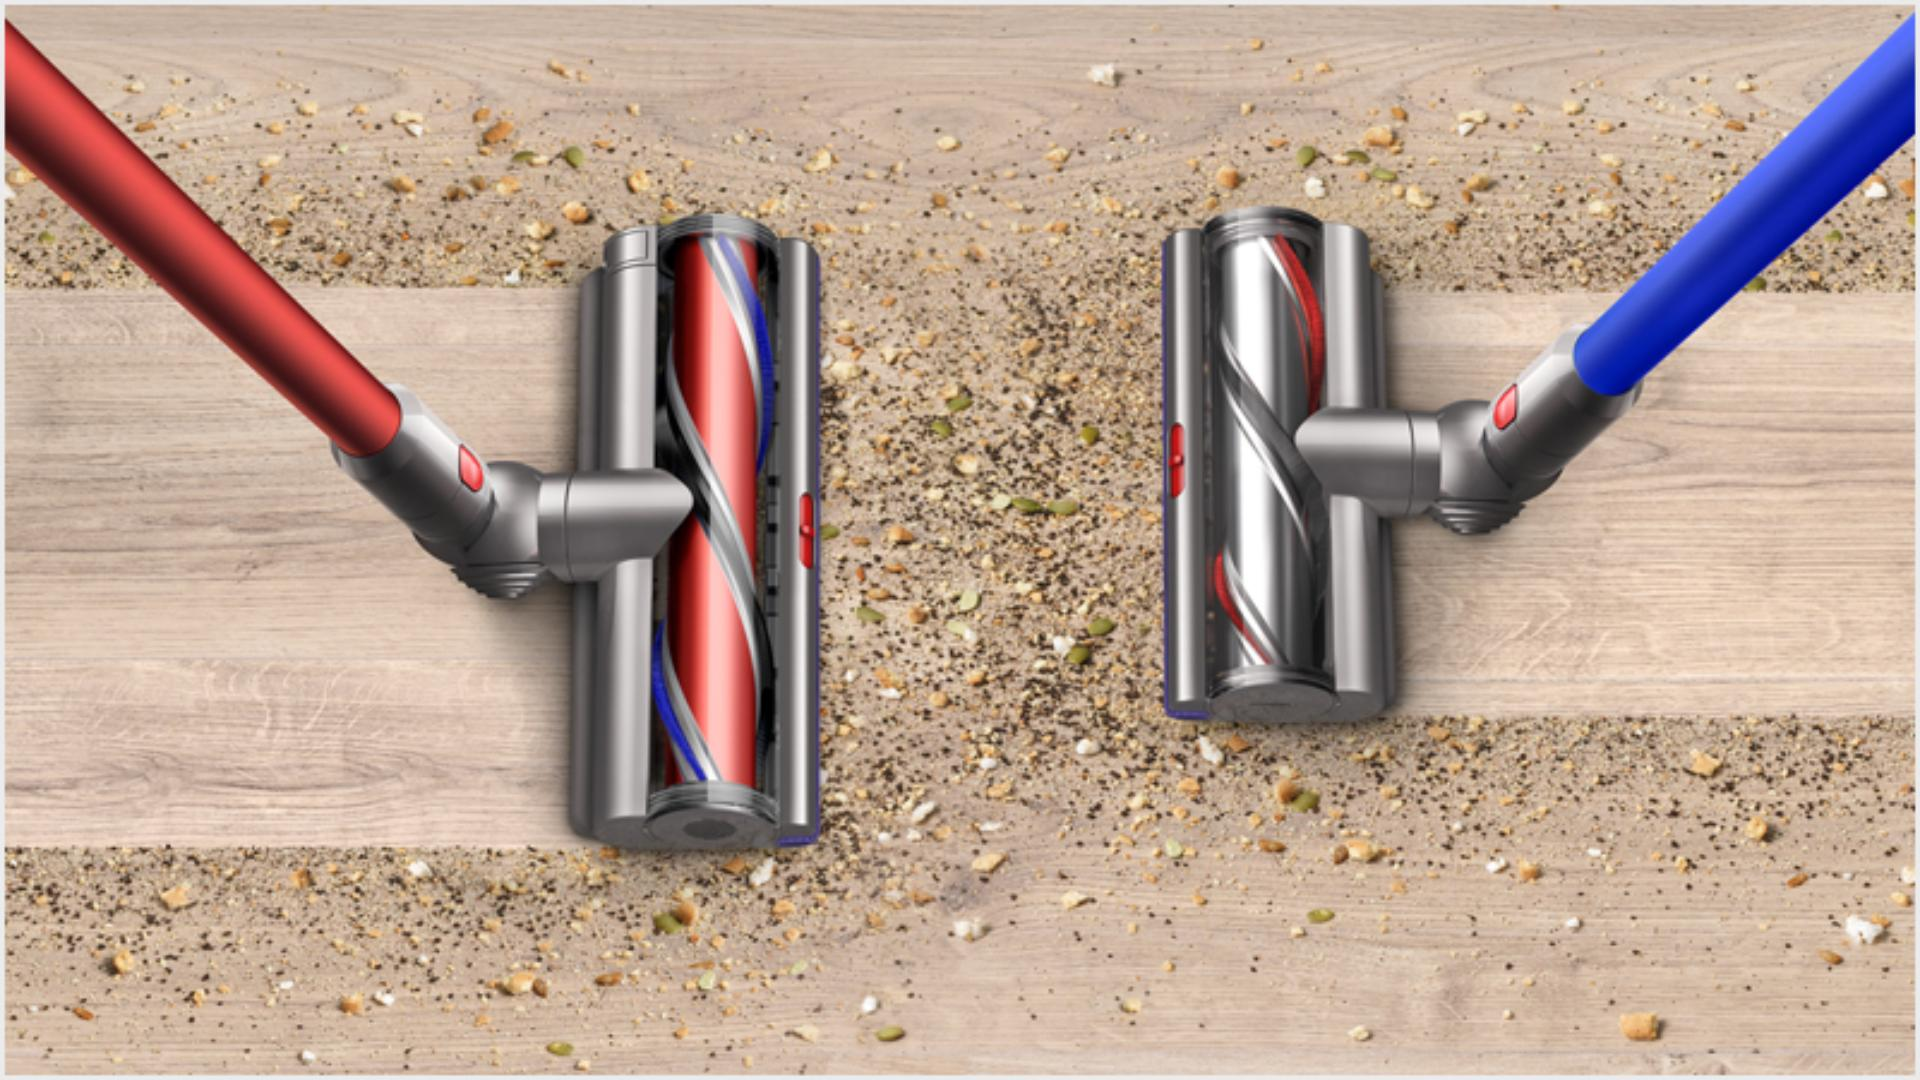 Dyson Outsize High Torque XL cleaner head cleaning 25% more floor than a Dyson V11 High Torque cleaner head